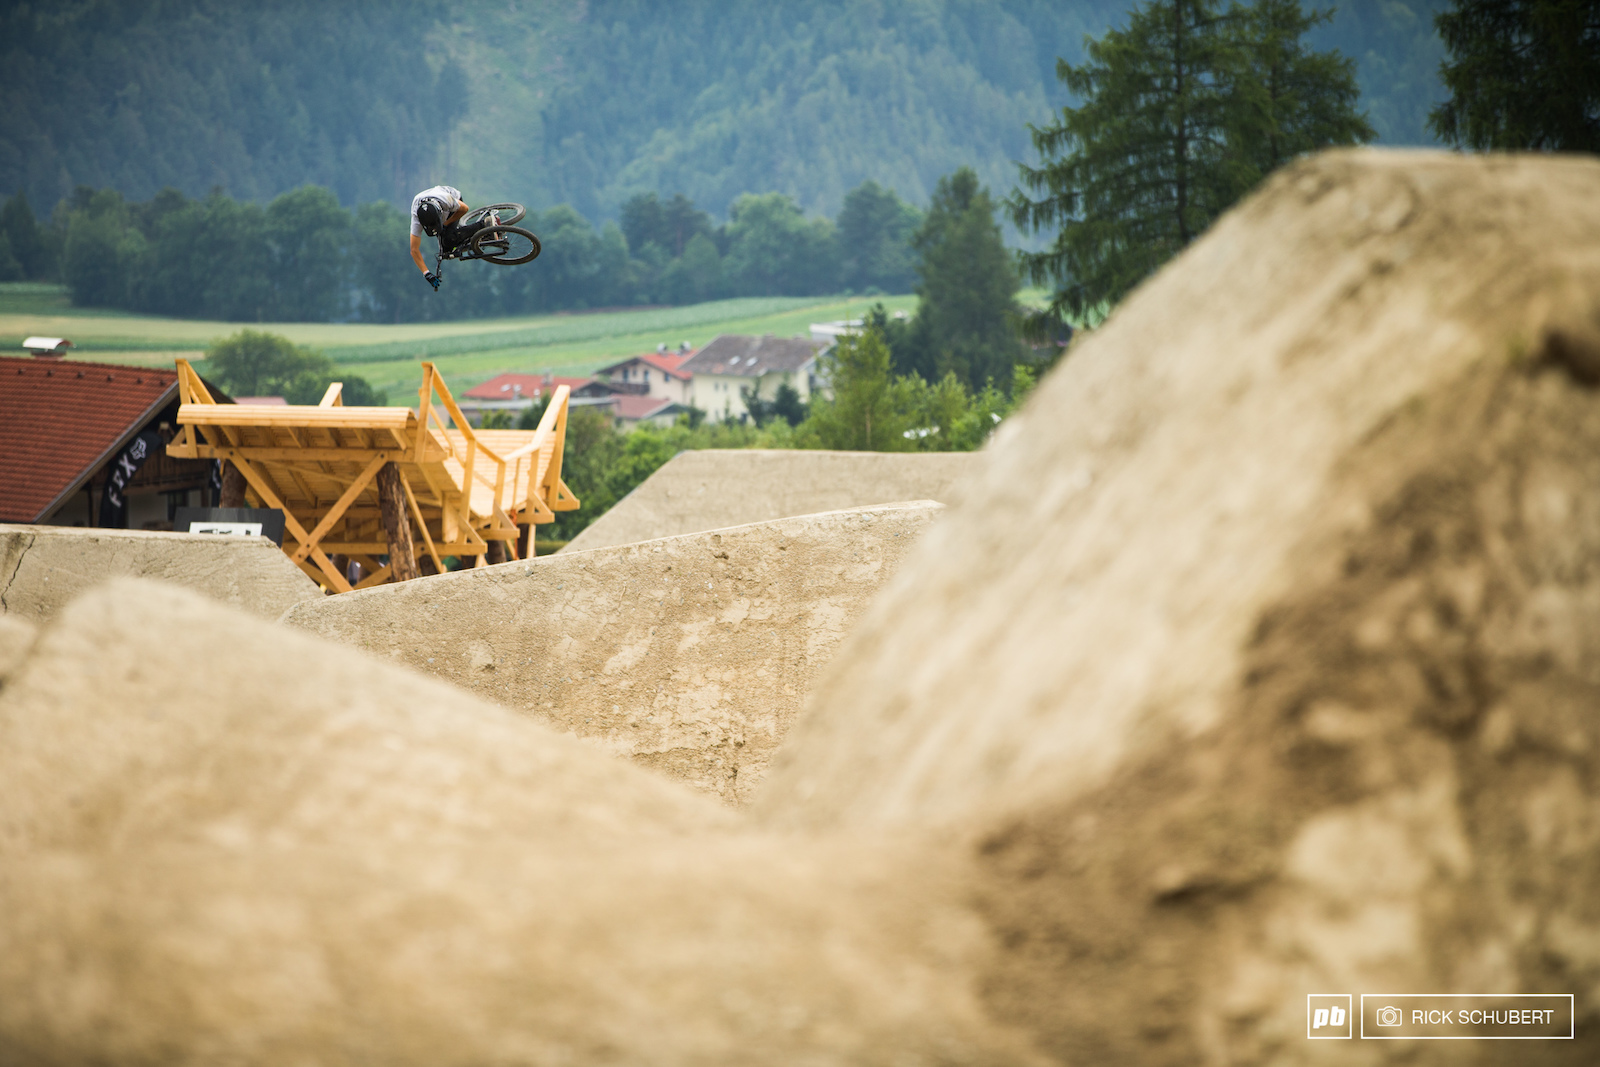 Torquato Testa got third in Rotorua but was not able to lay it down once again here in Innsbruck